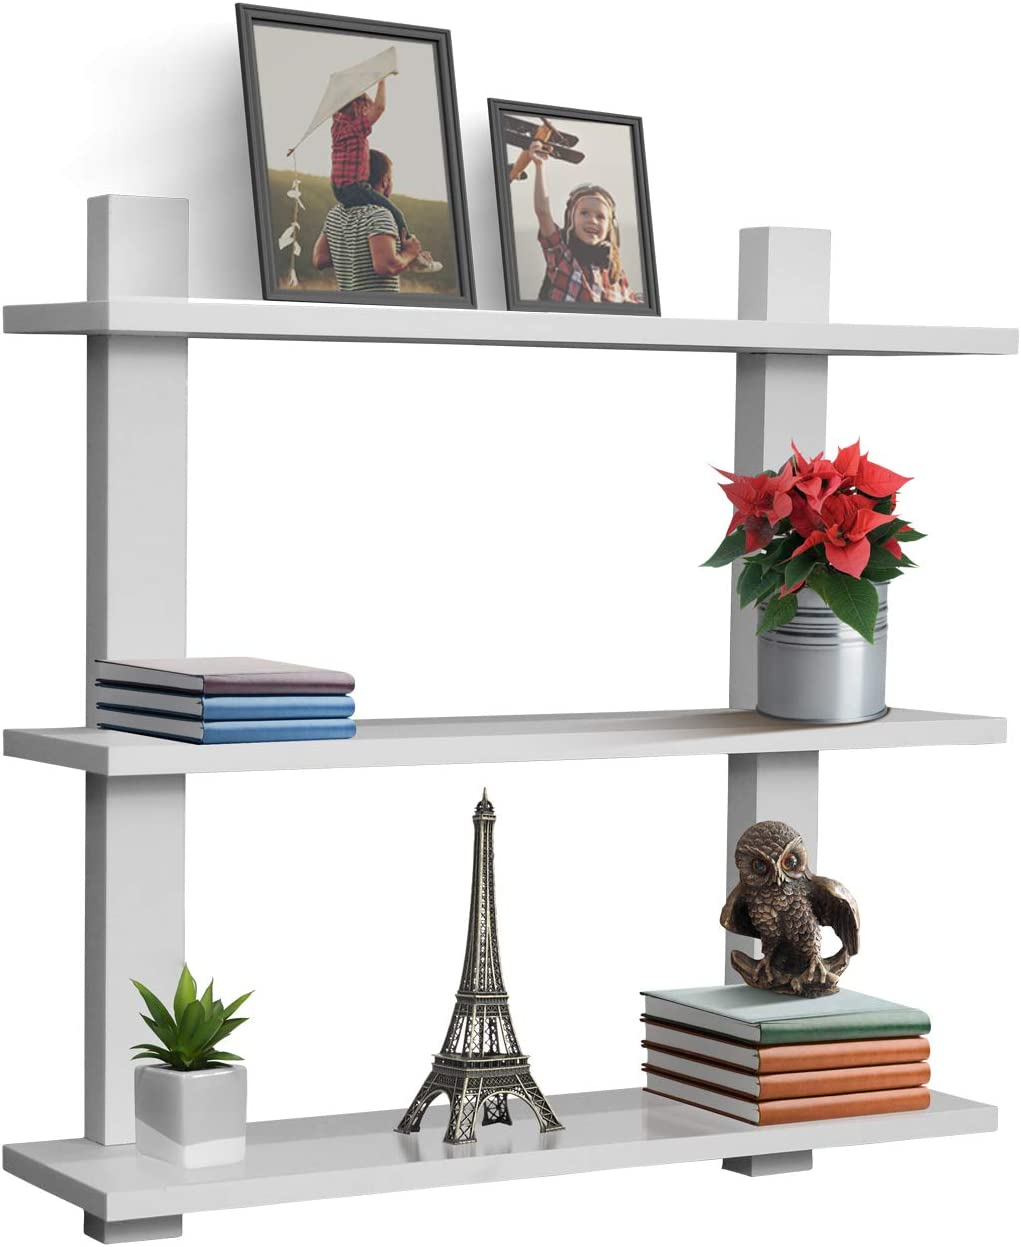 Sorbus Floating Shelf Asymmetric Square Wall Shelf, Decorative Hanging Display for Trophy, Photo Frames, Collectibles, and Much More, Set of 3 3-Tier White